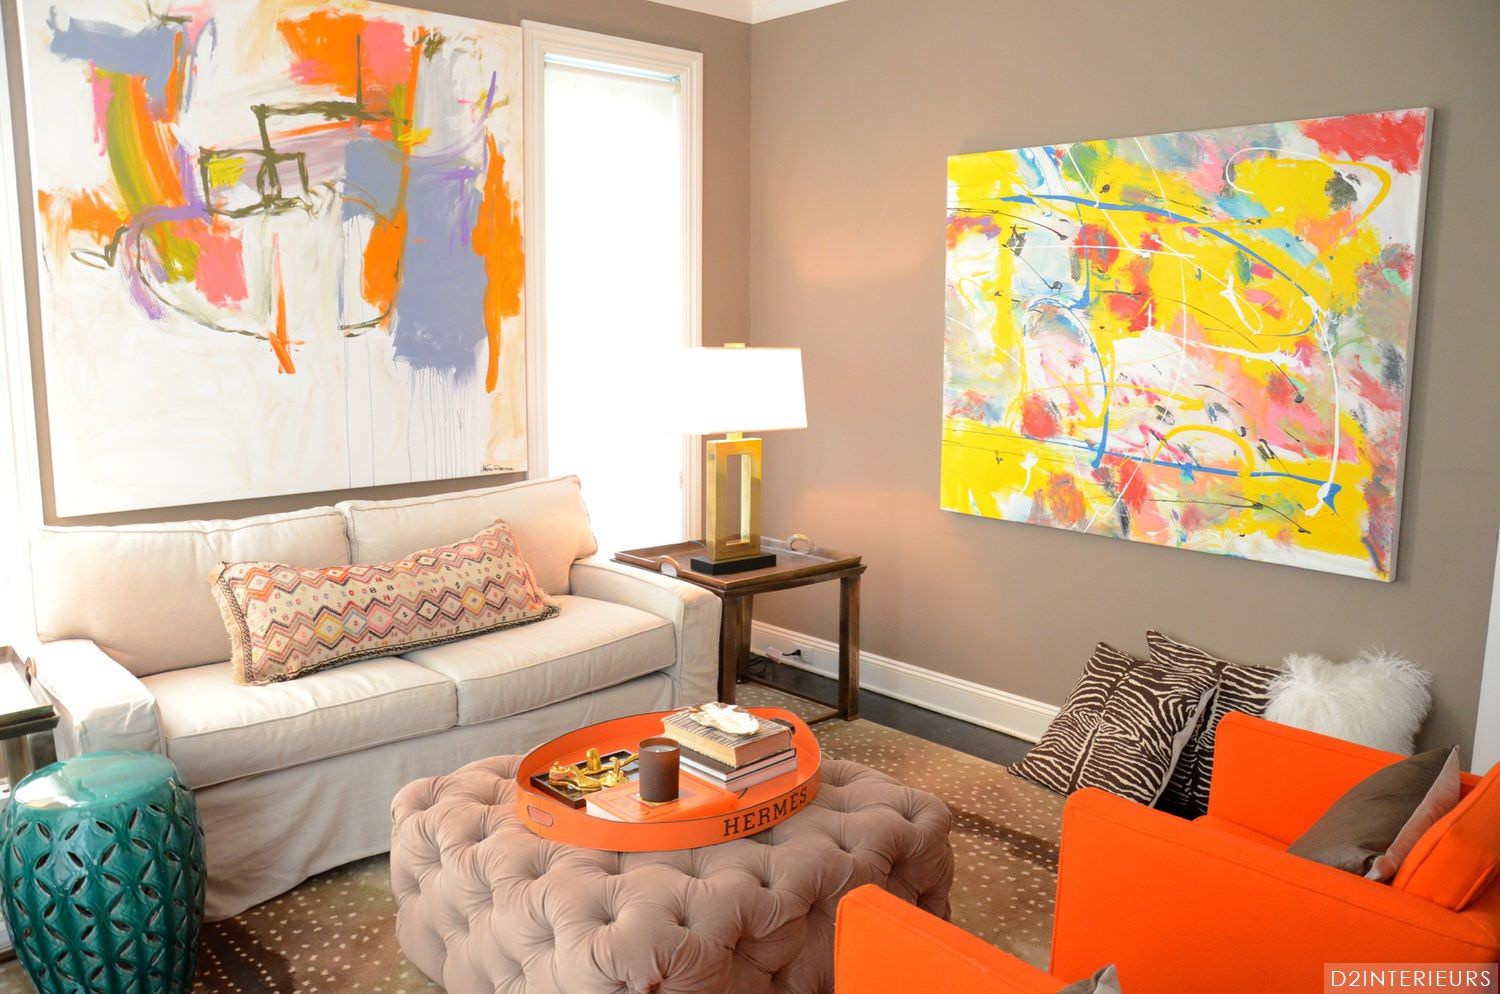 Name all the orange things in this image. Well, let's start it with the pair of orange armchairs, the orange tray on top of the ottoman, the orange patterns on the bolster pillow, and some orange accents on the artwork hanging on the wall. These bright colored items seem to highlight what could otherwise be a gloomy living room and give it a cheerful atmosphere.